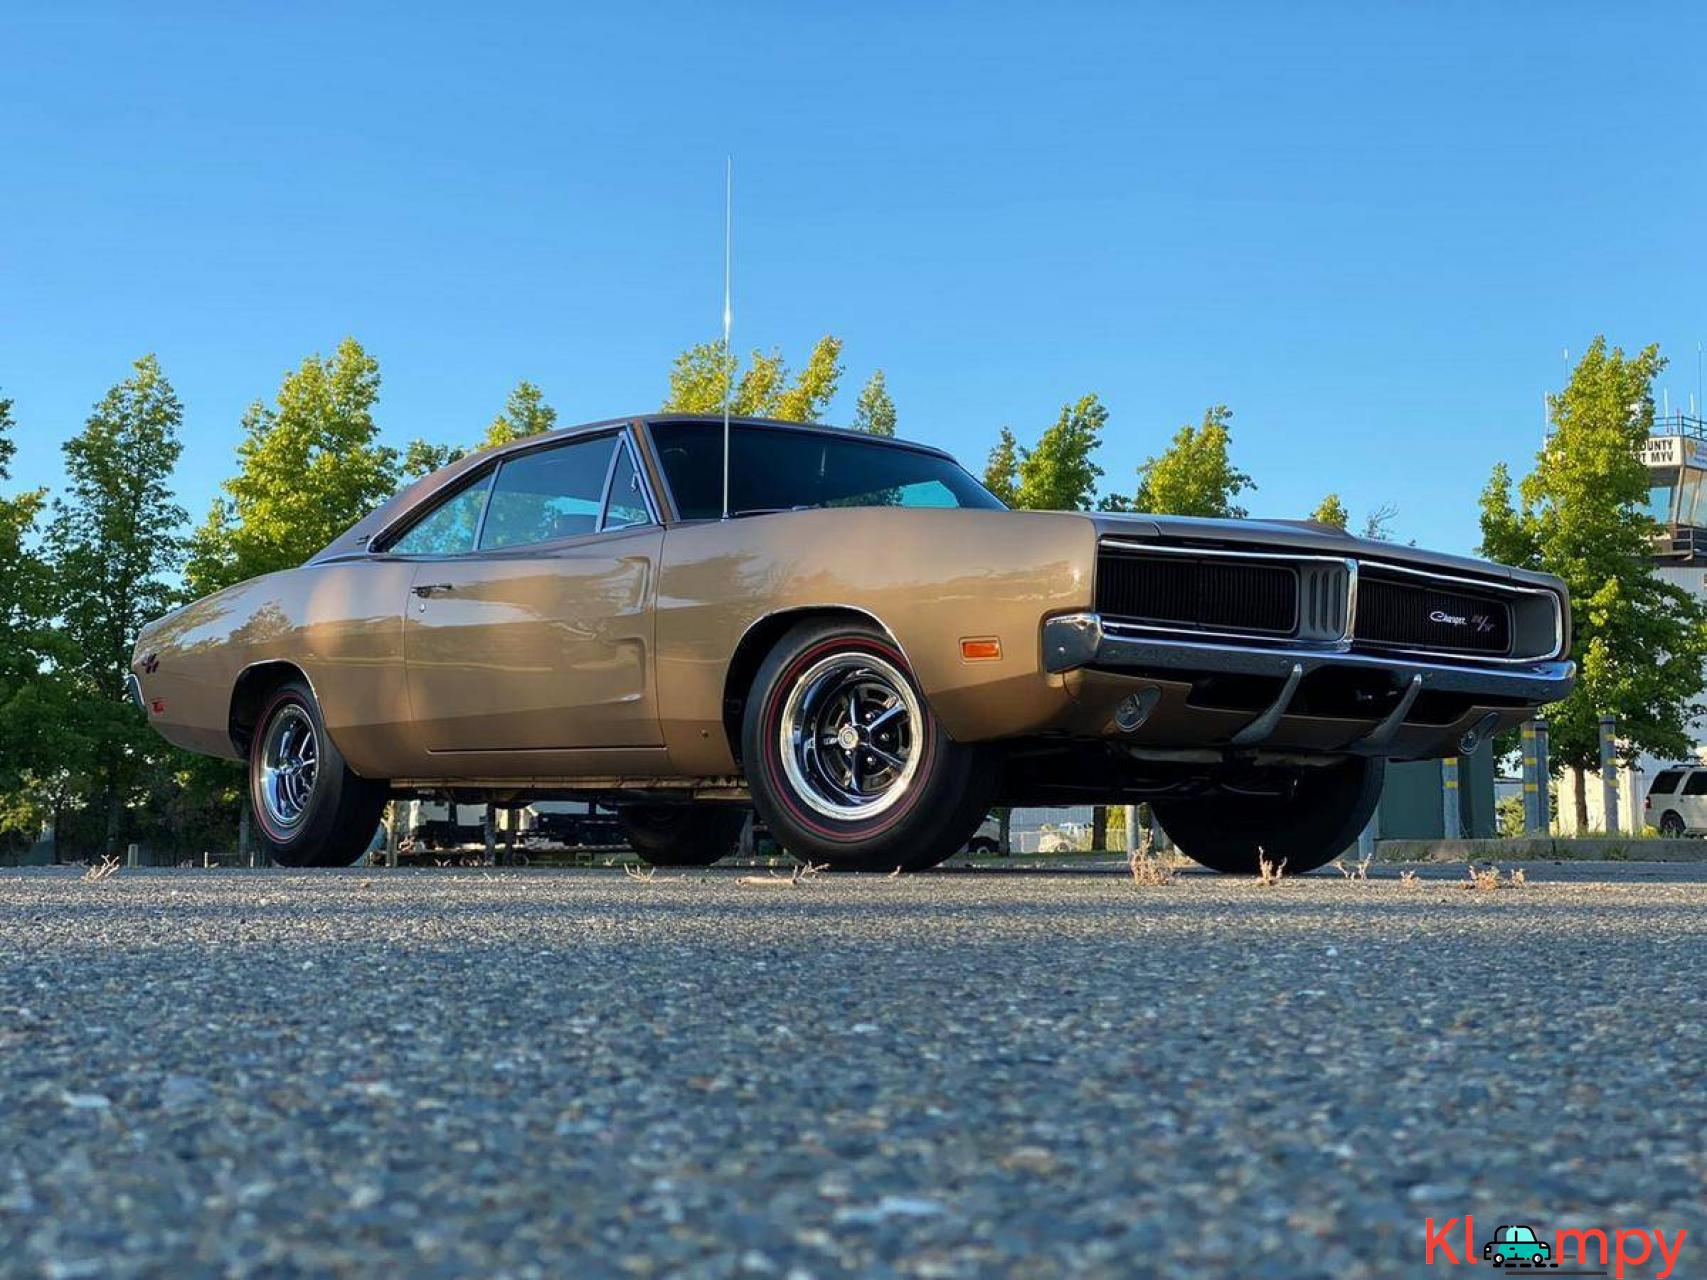 1969 Dodge Charger RT SE 440 375hp High Performance - 4/20